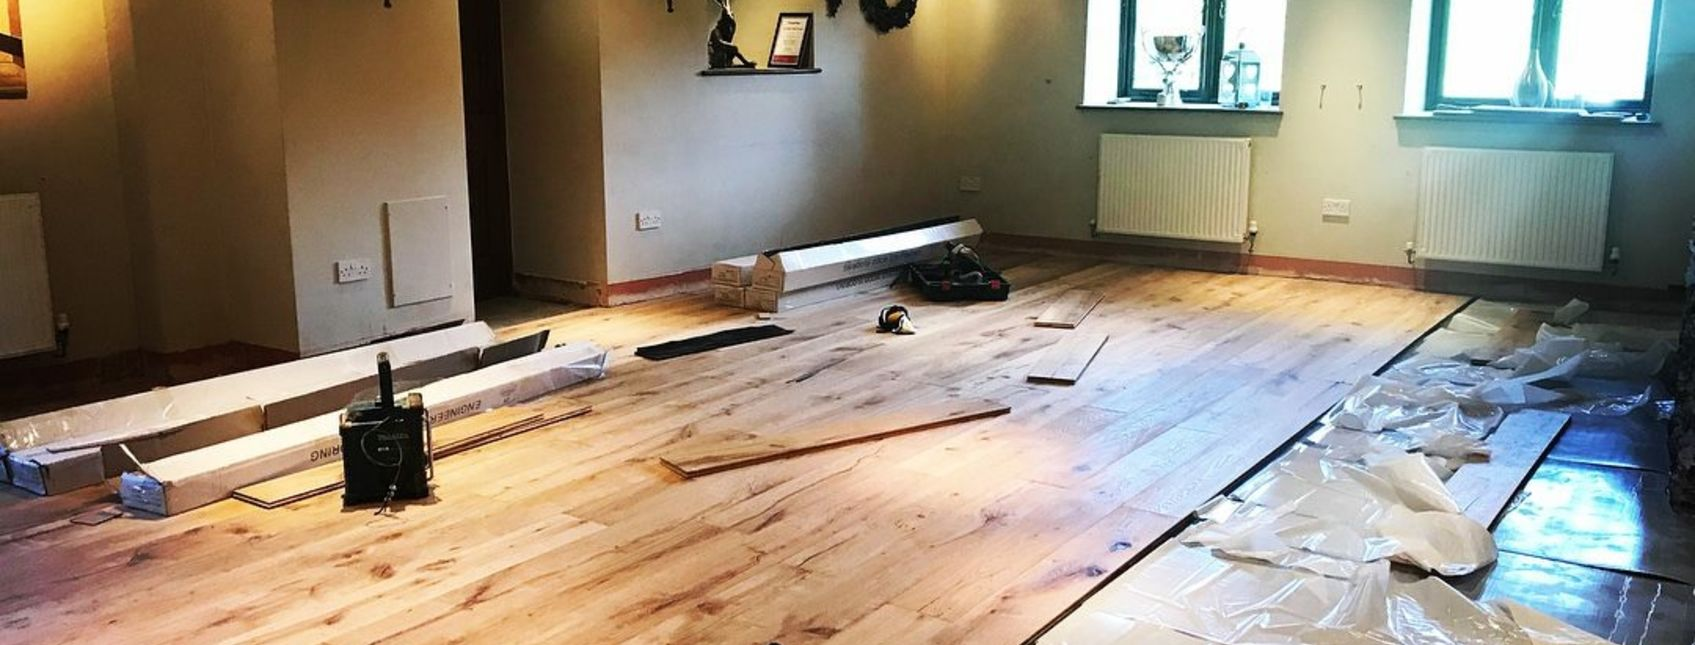 Engineered oak flooring at The Tarr Farm Inn